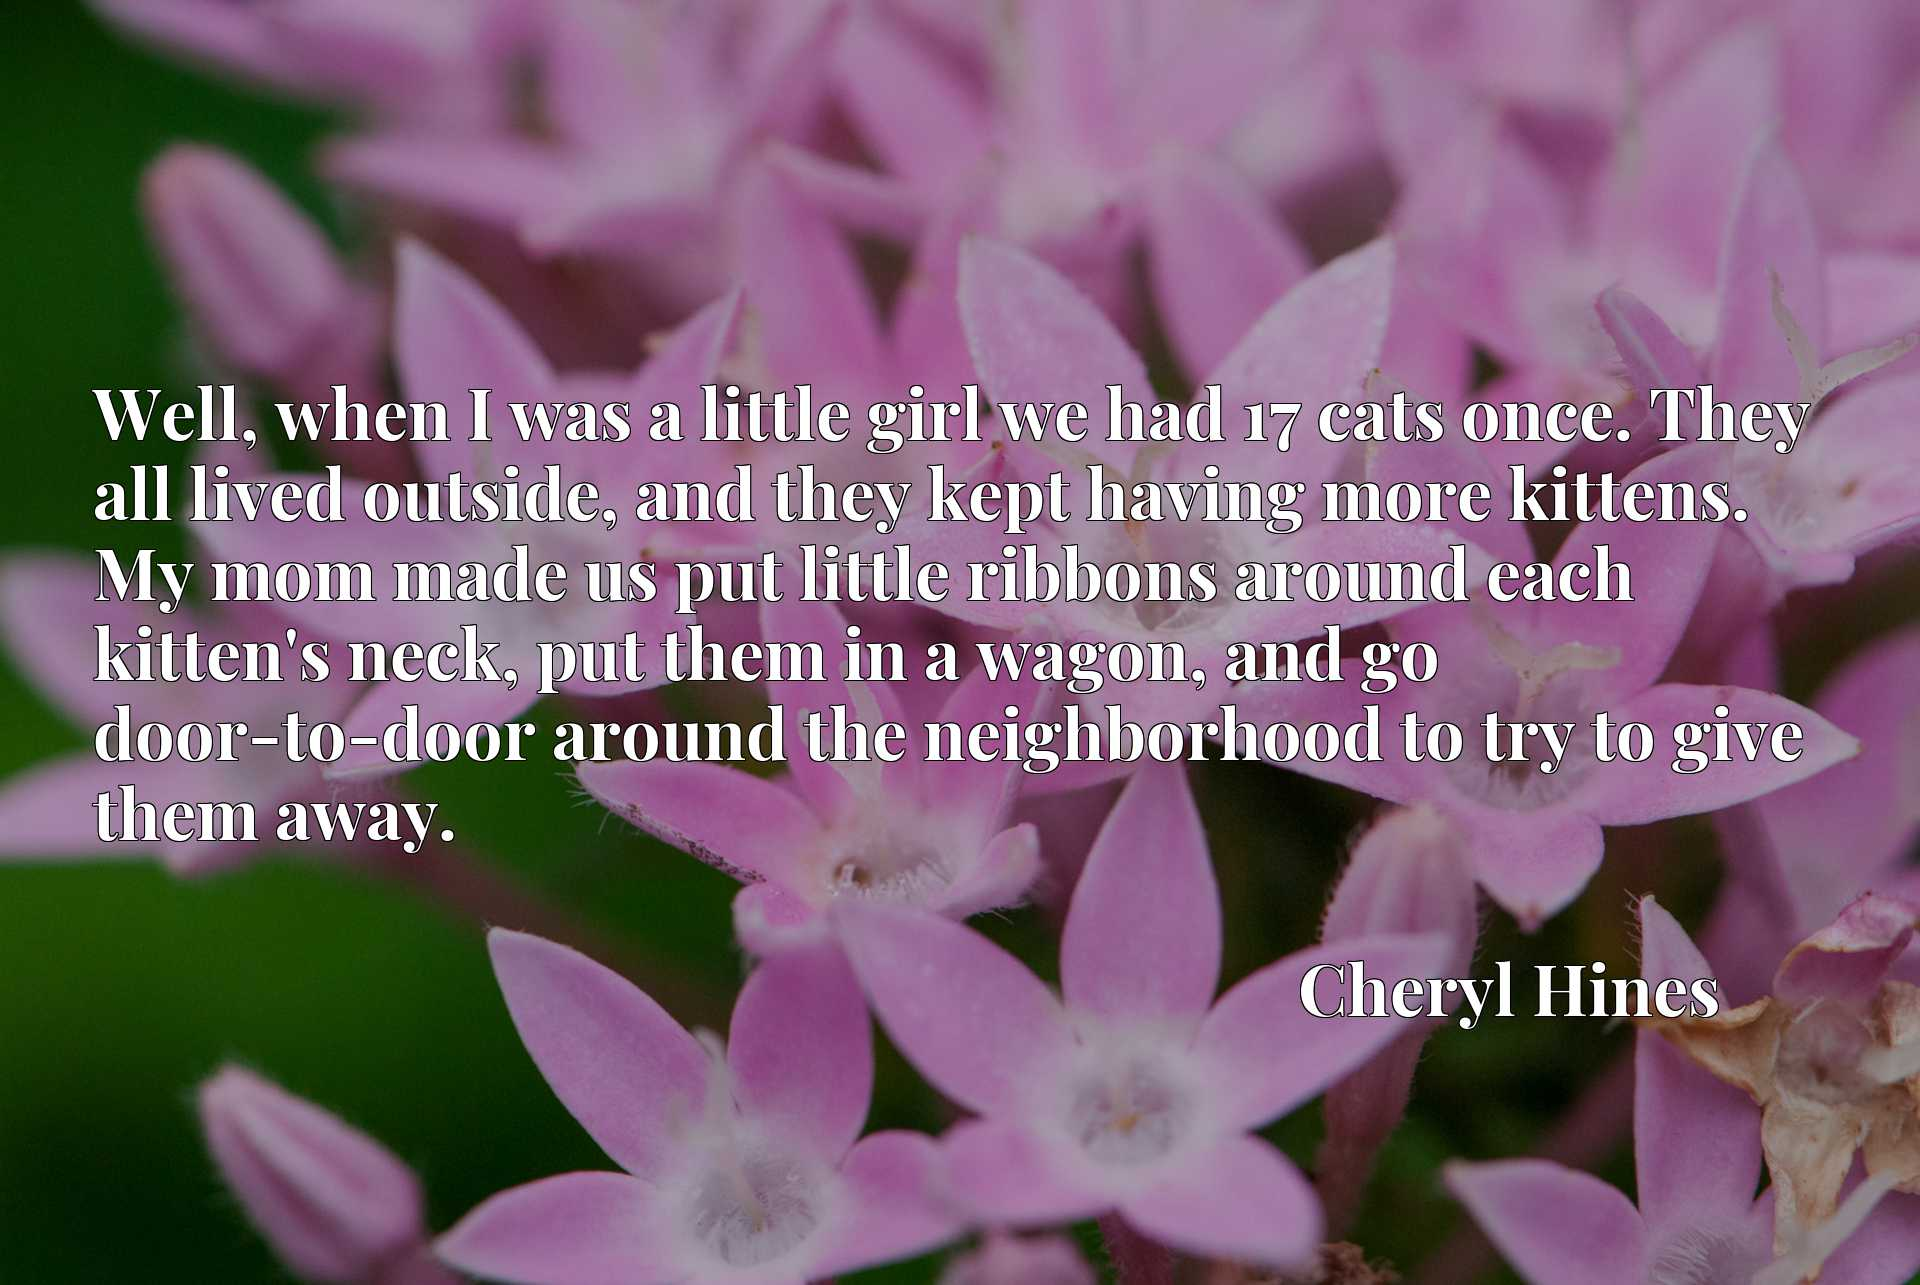 Well, when I was a little girl we had 17 cats once. They all lived outside, and they kept having more kittens. My mom made us put little ribbons around each kitten's neck, put them in a wagon, and go door-to-door around the neighborhood to try to give them away.